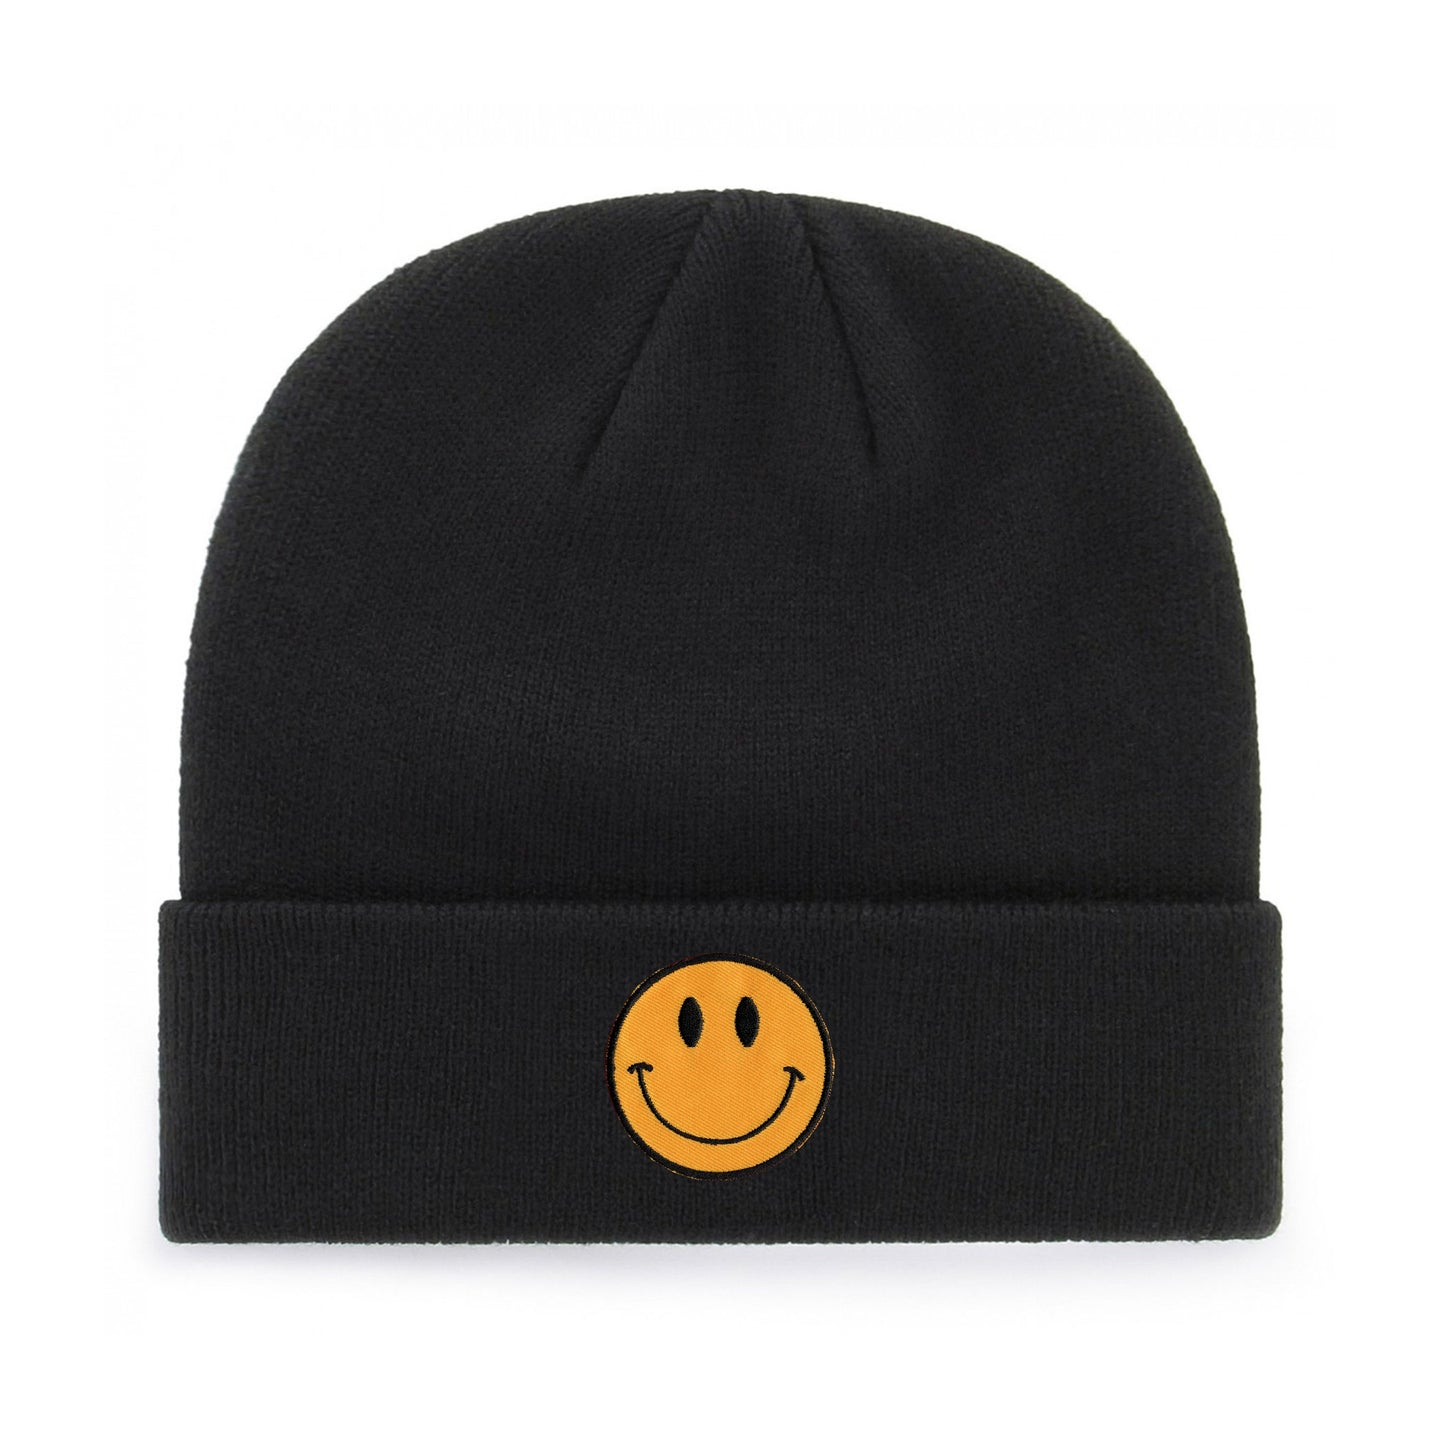 SMALL SMILEY BEANIE